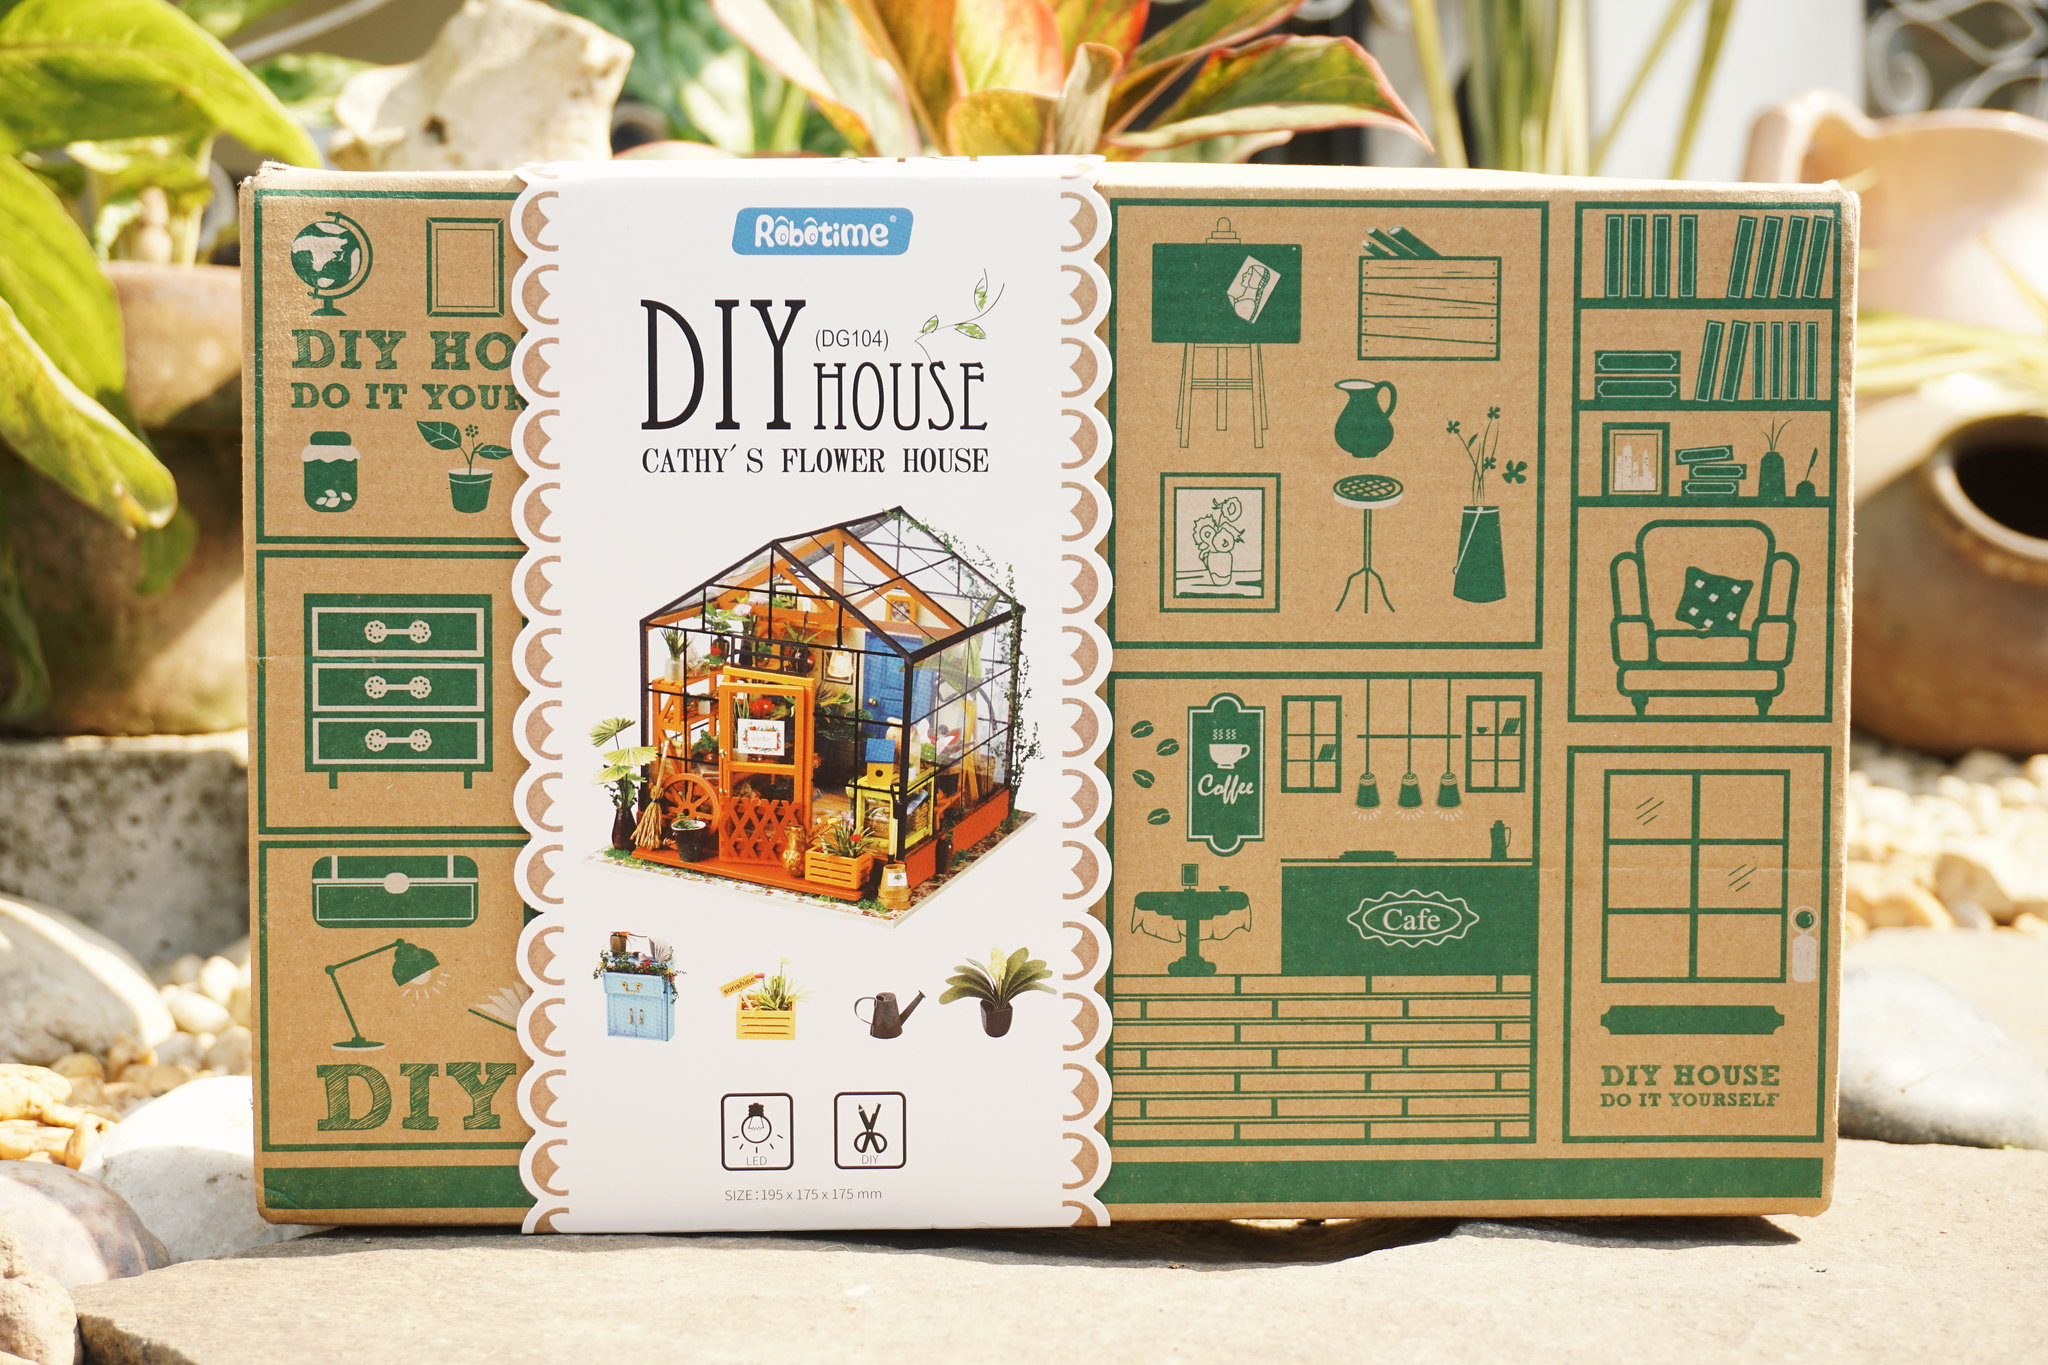 Diy dollhouse kit miniature greenhouse cathys flower house 2017 06 16 030101 1 1 solutioingenieria Choice Image